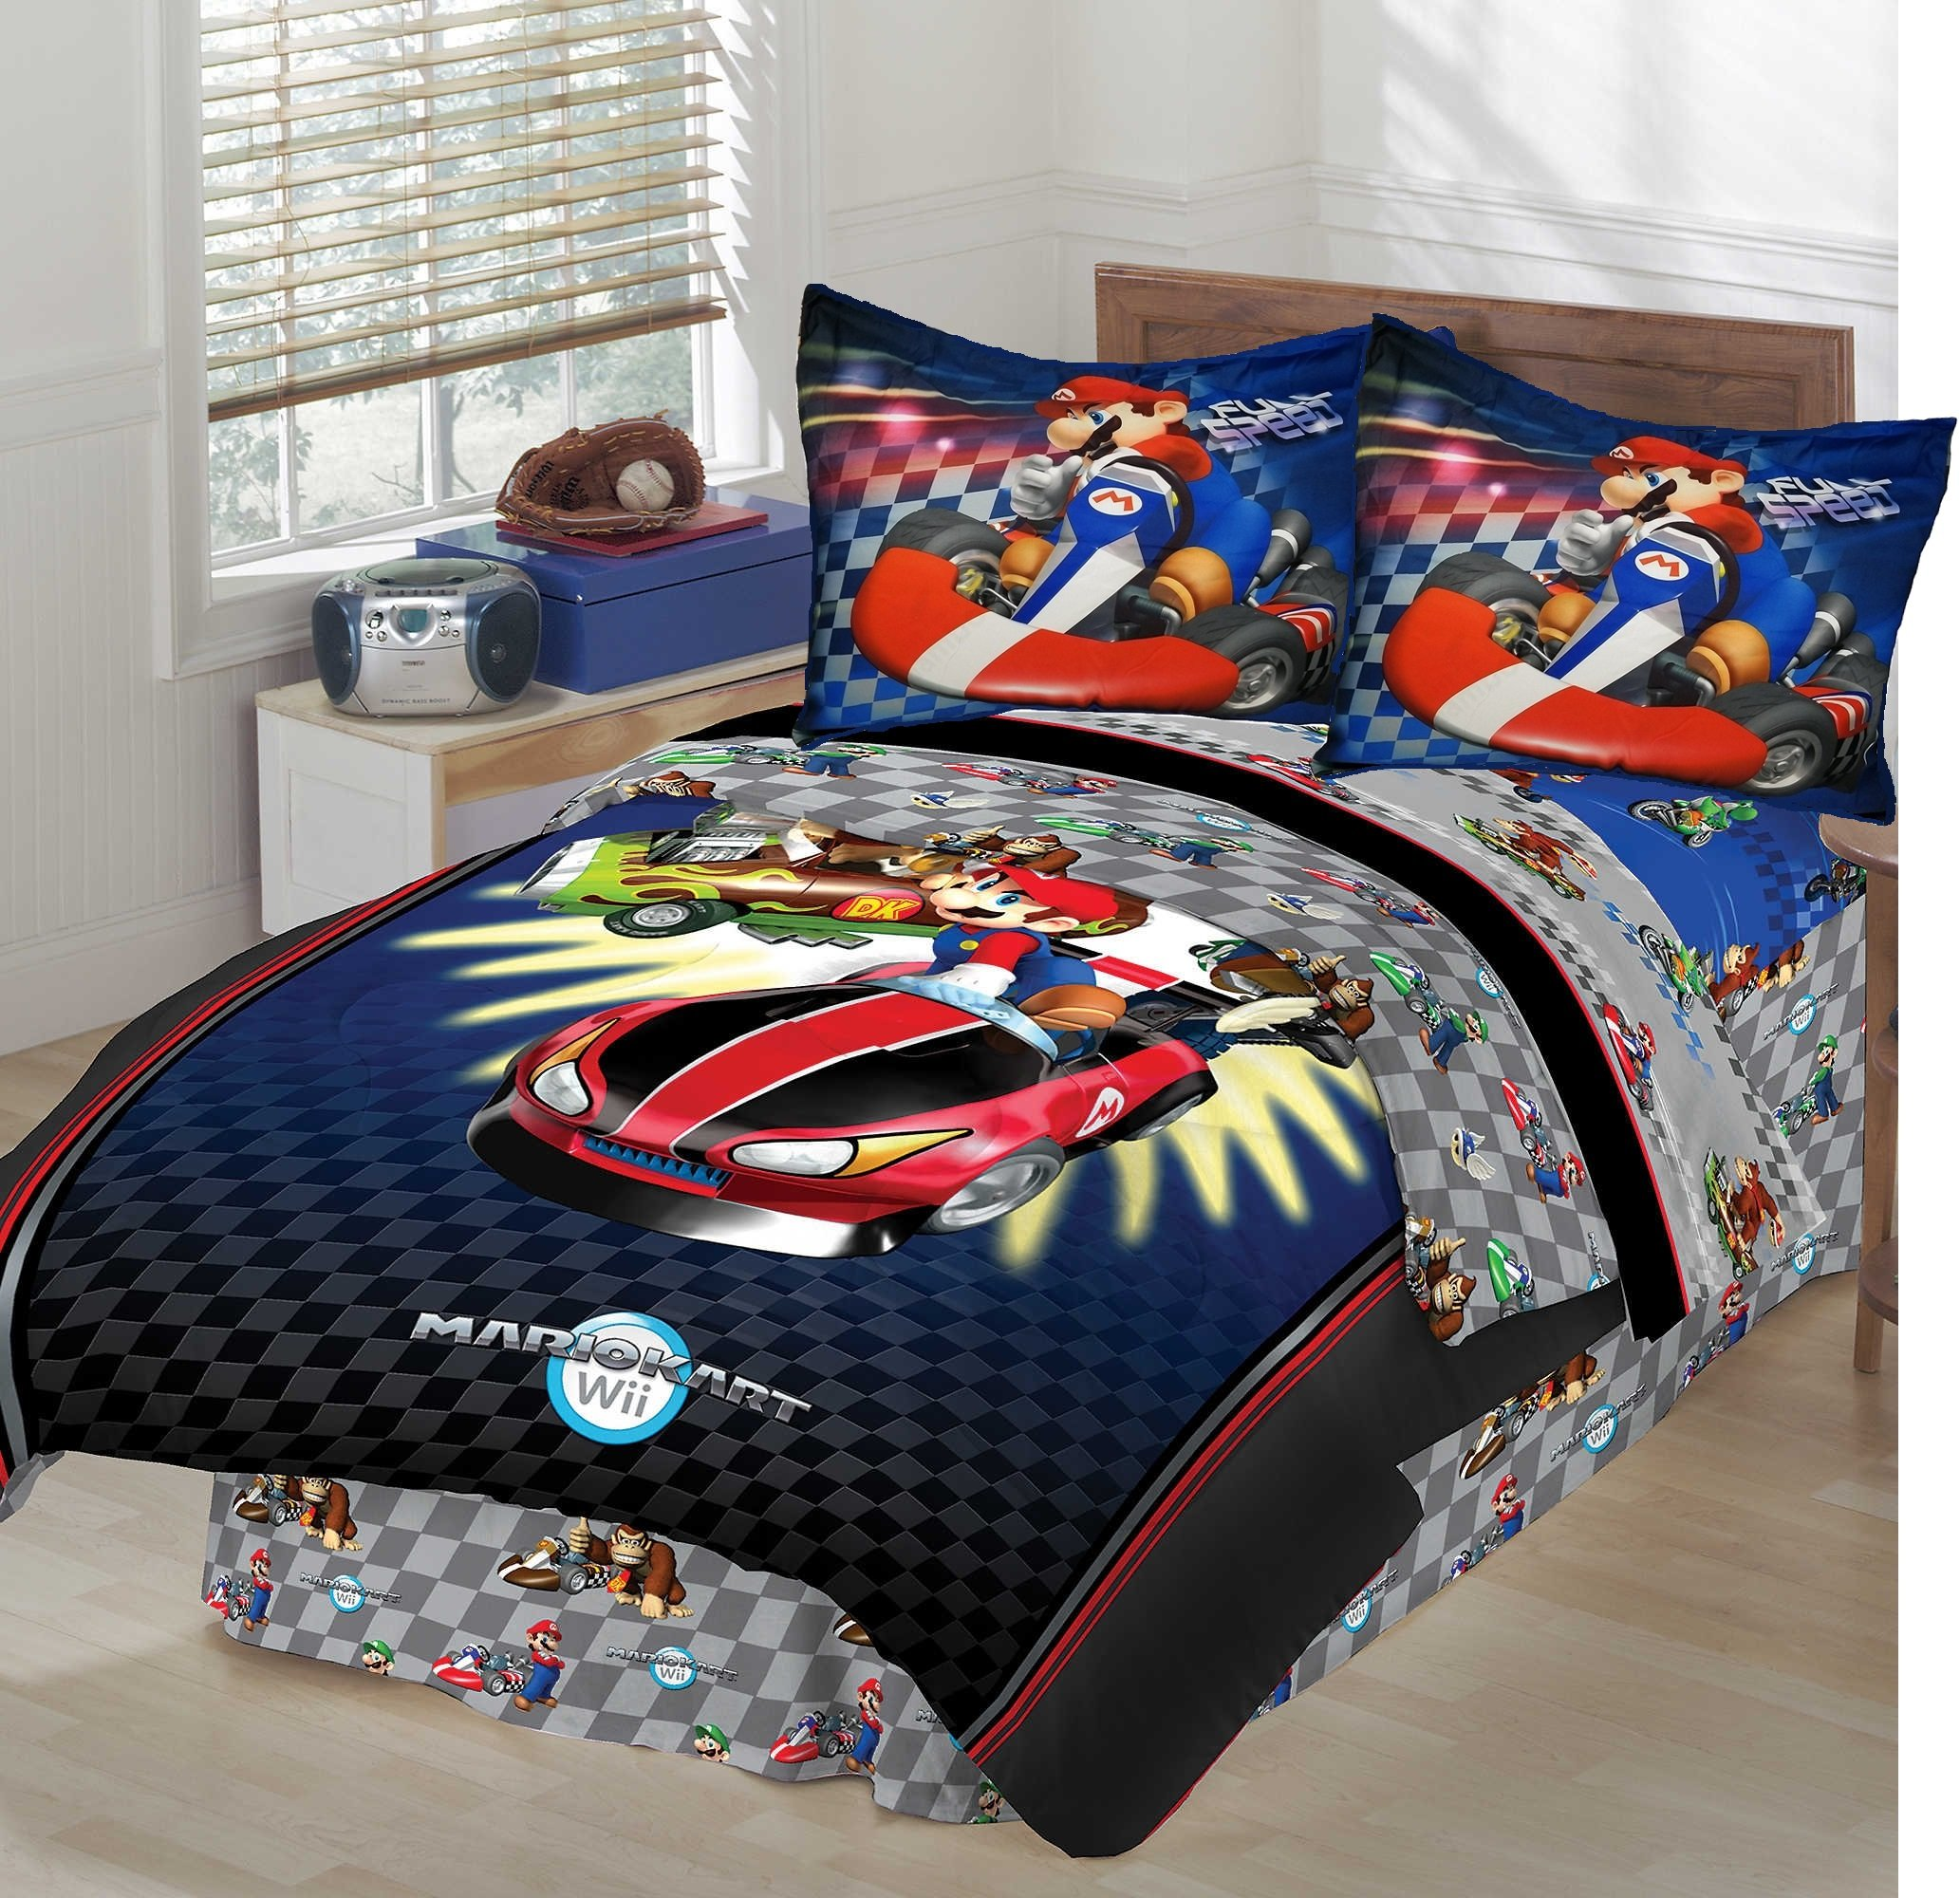 SUPER MARIO BROTHERS MARIO KART FULL SIZE Comforter Set + 34pc WALL DECALS